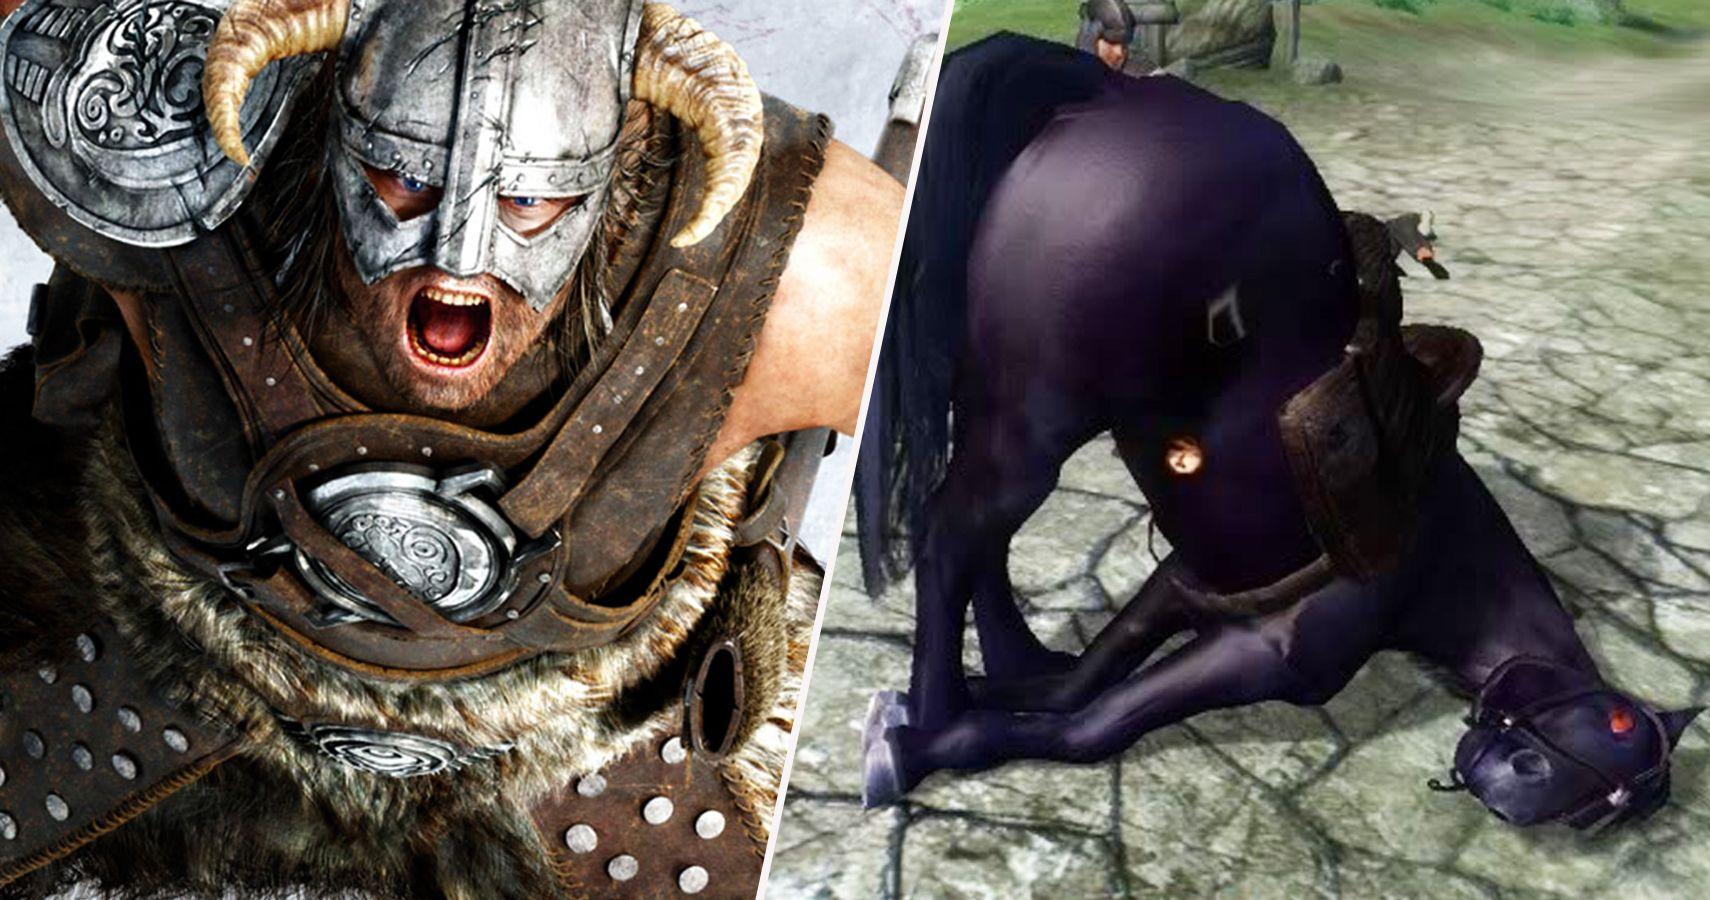 25 Glaring Problems With The Elder Scrolls We All Choose To Ignore